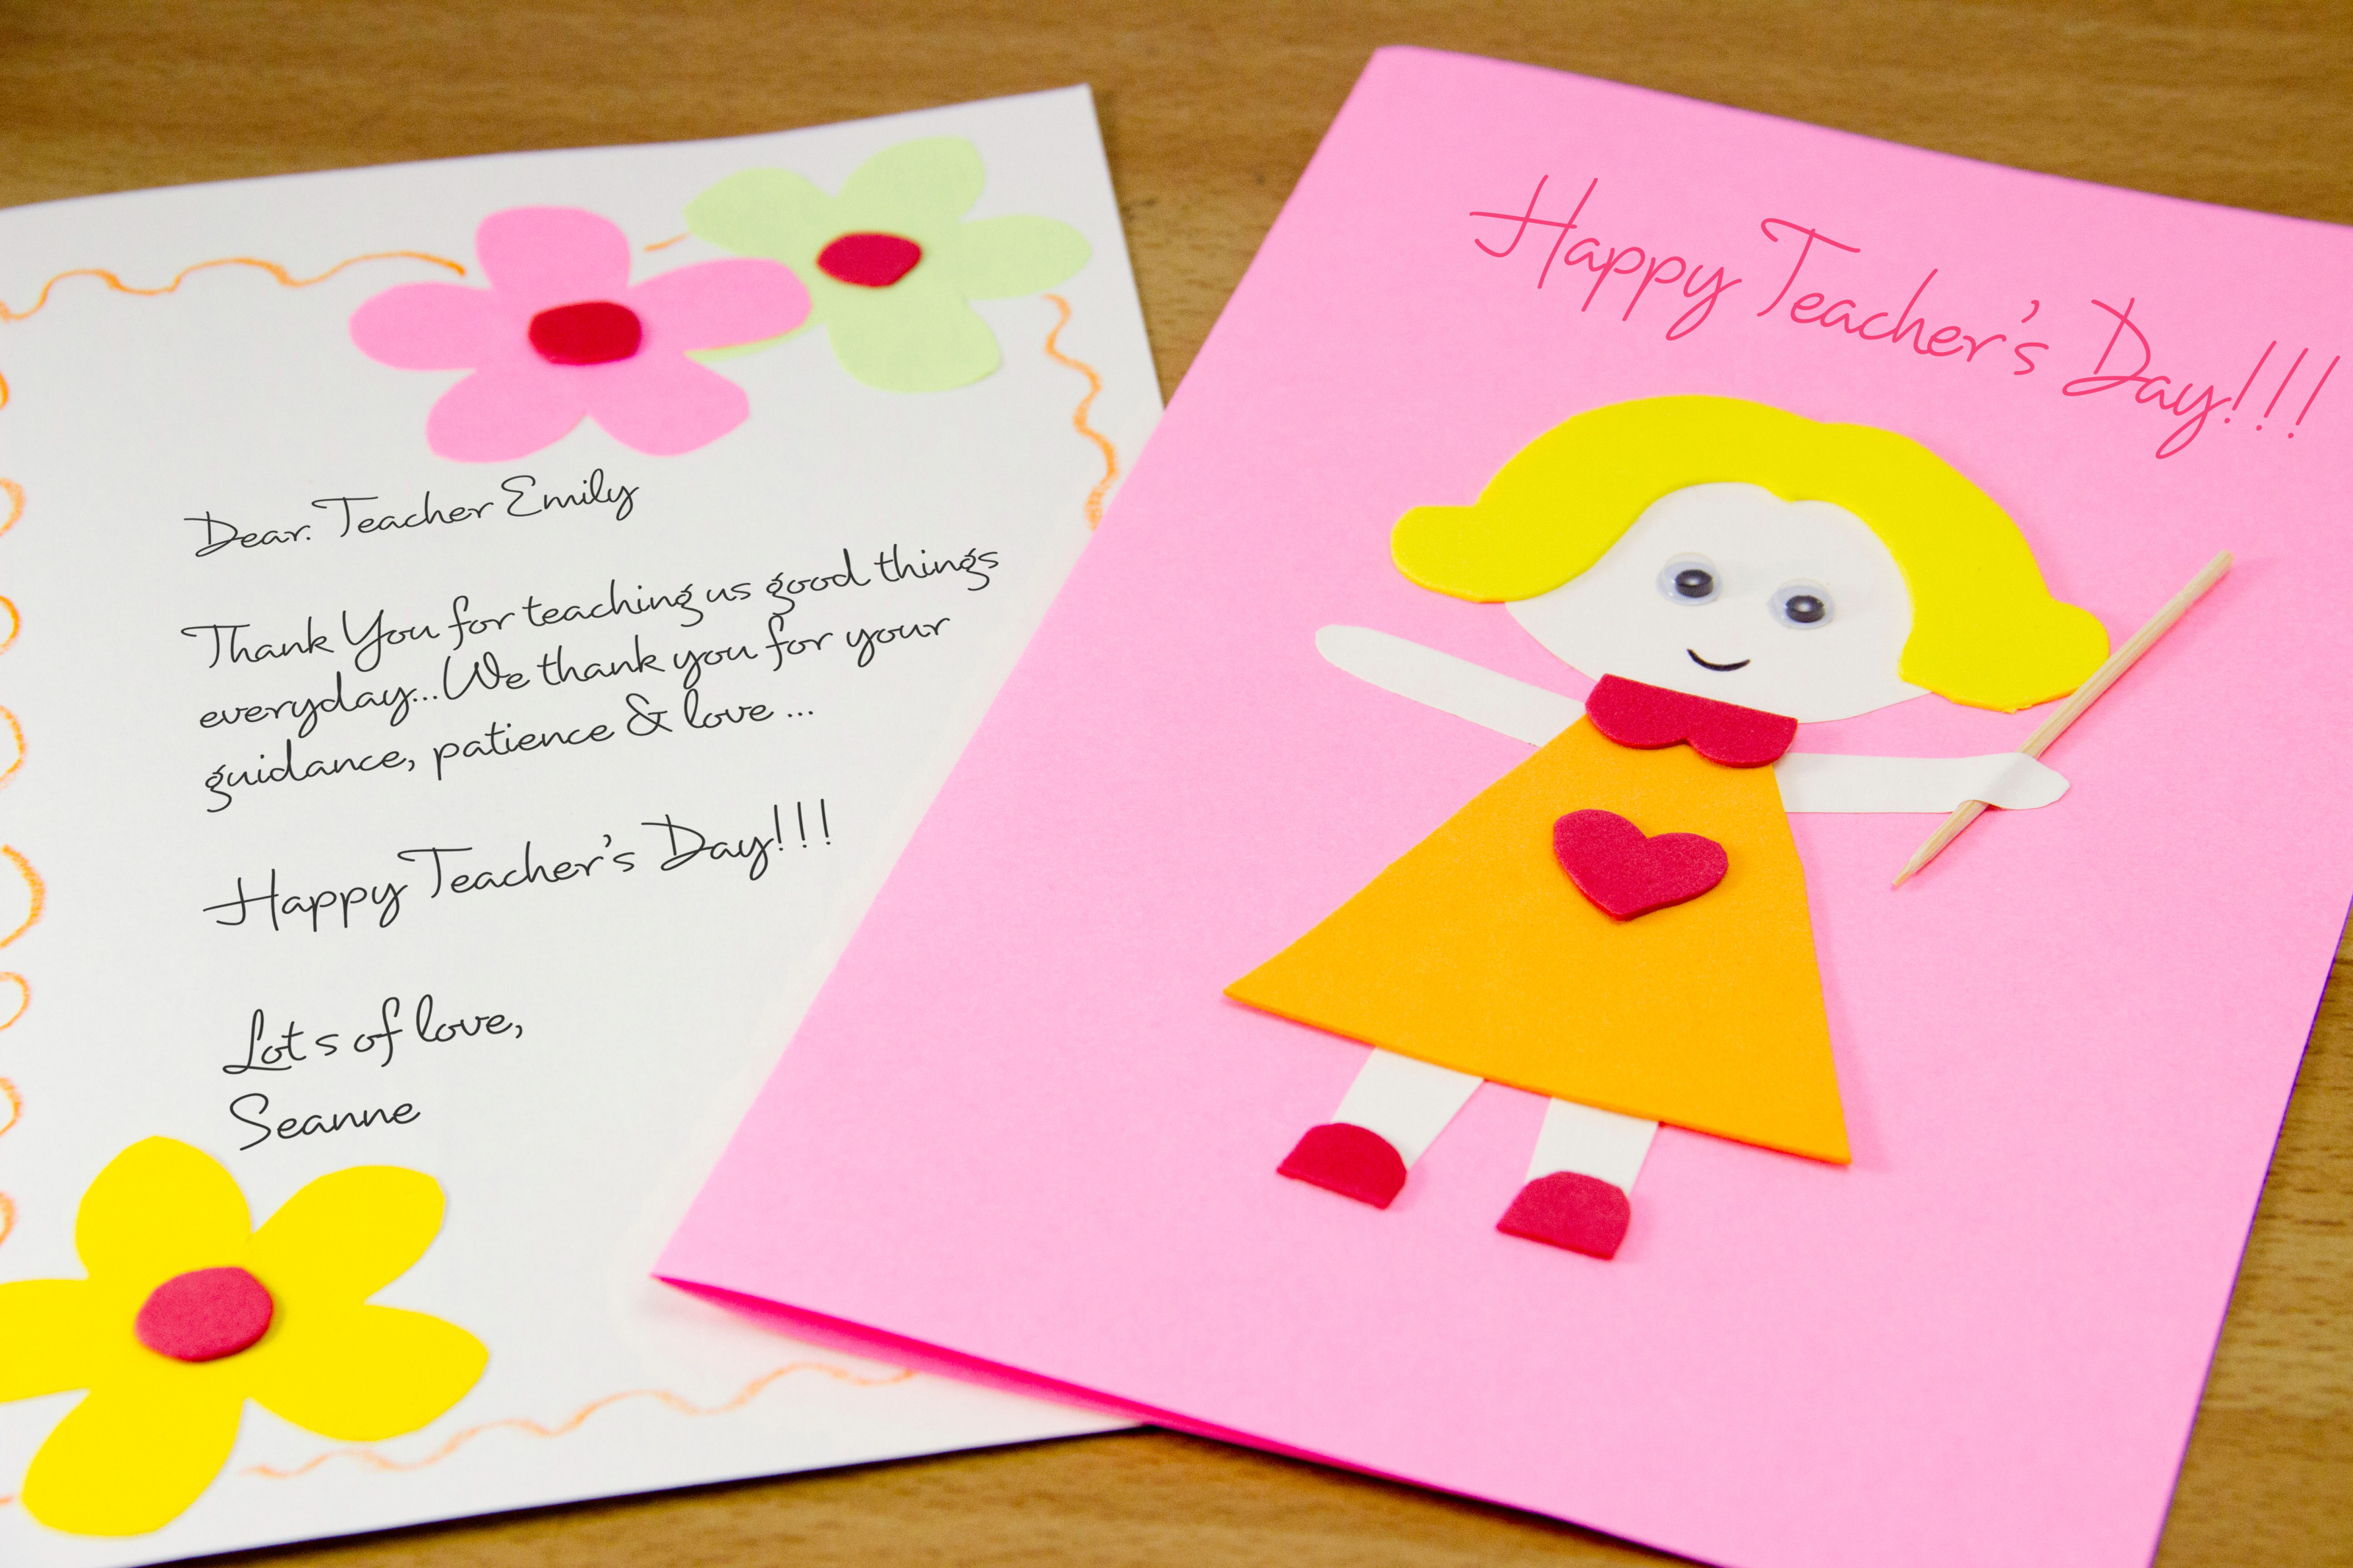 New happy teachers day greeting cards 2017 free download download teachers greeting card kristyandbryce Images